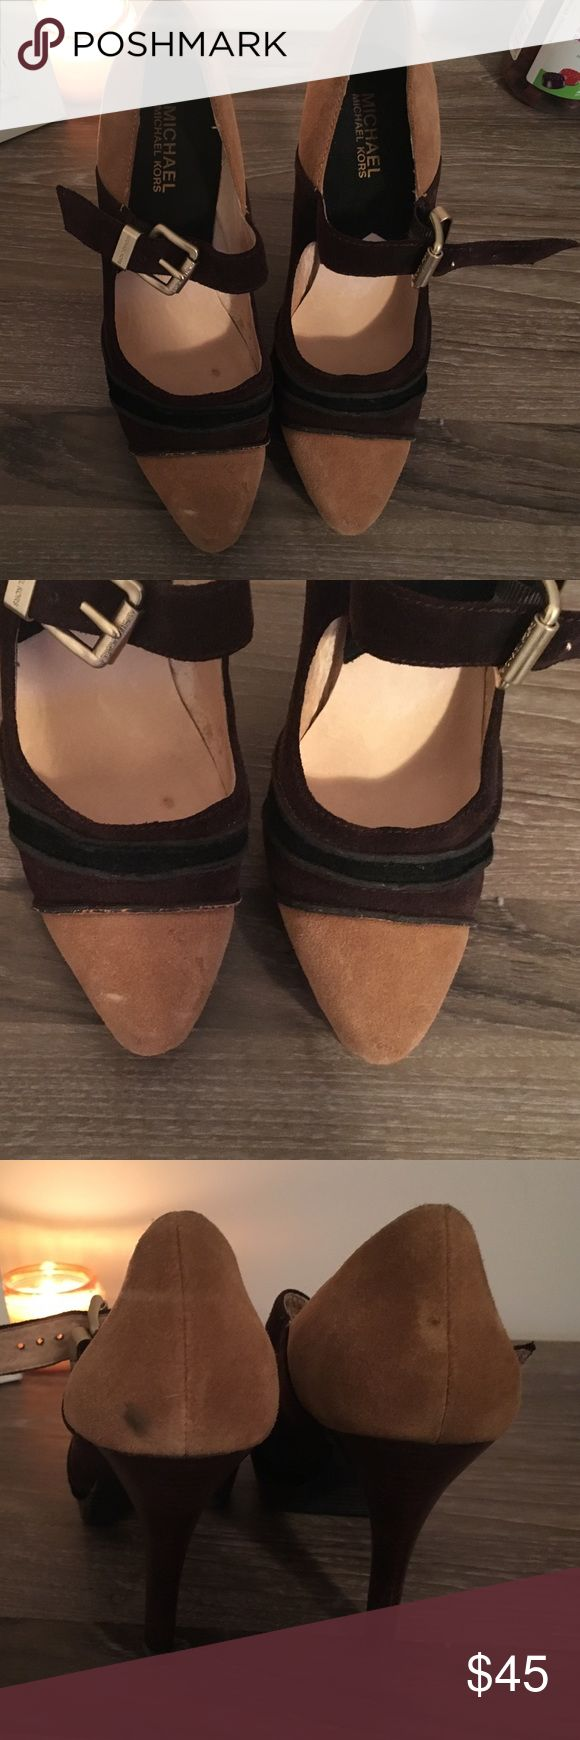 Michael Kors heels Multi colored Michael Kors suede Mary Jane heels! Very comfortable! Perfect for any occasion! Size 7 MICHAEL Michael Kors Shoes Heels